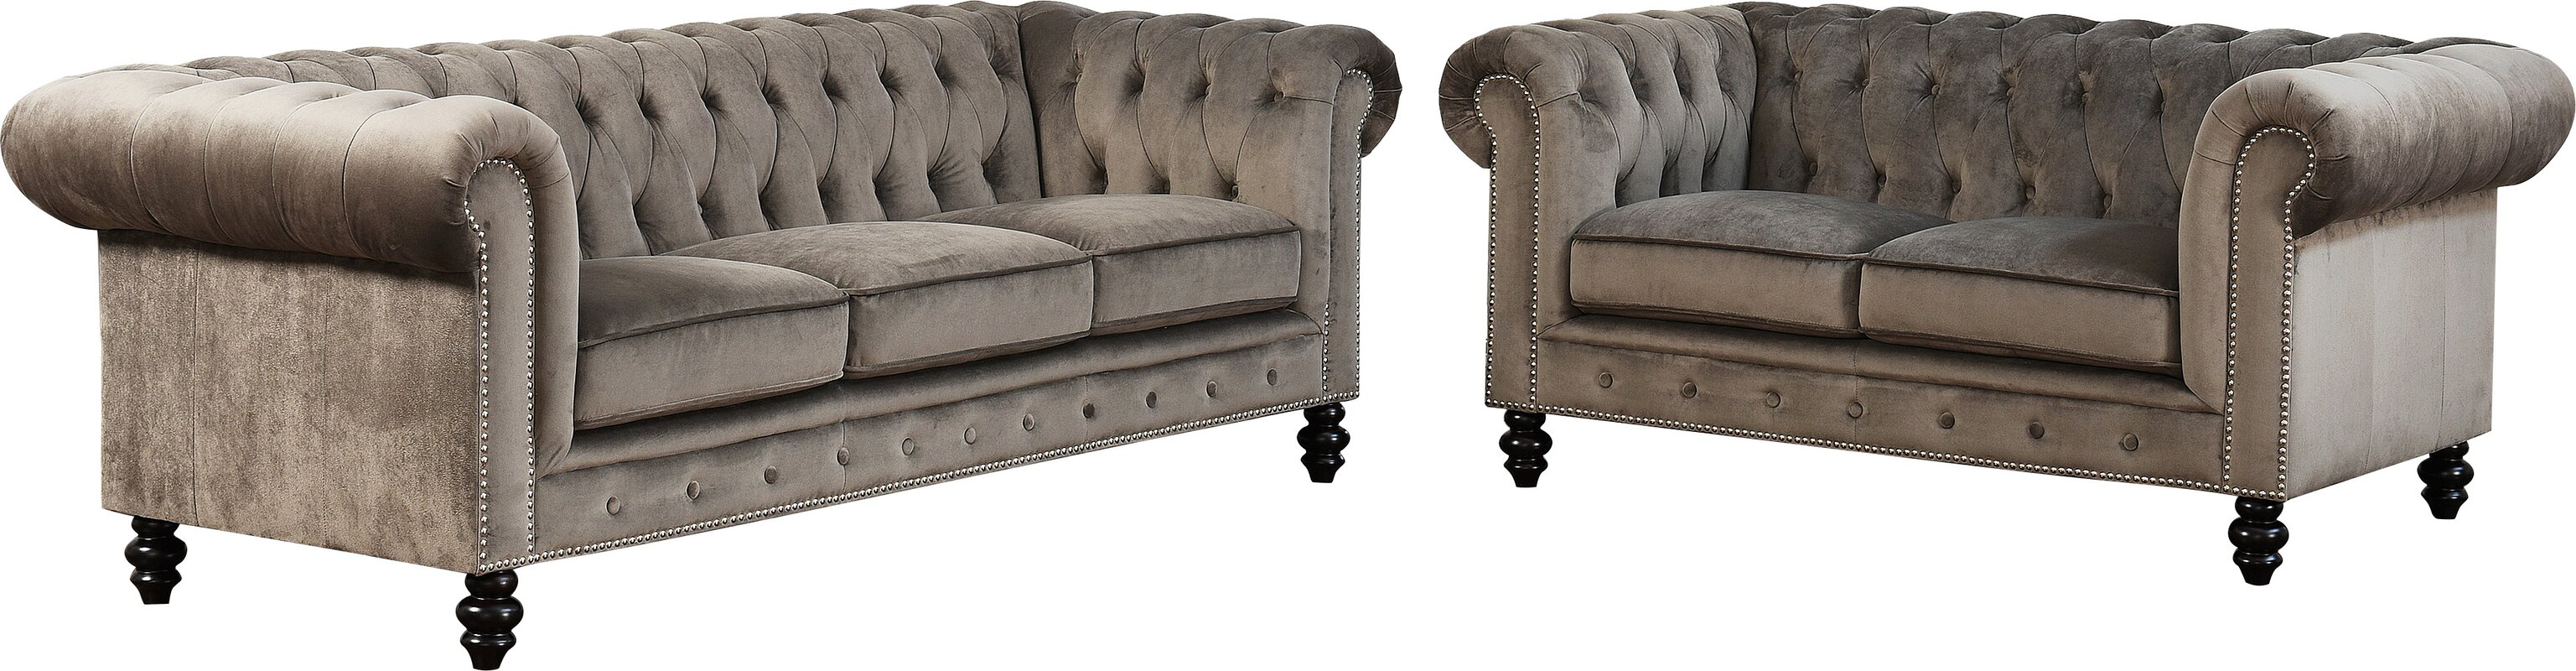 living sd ashley design brown sofa piece two antique room fresco loveseat includes by set signature durablend